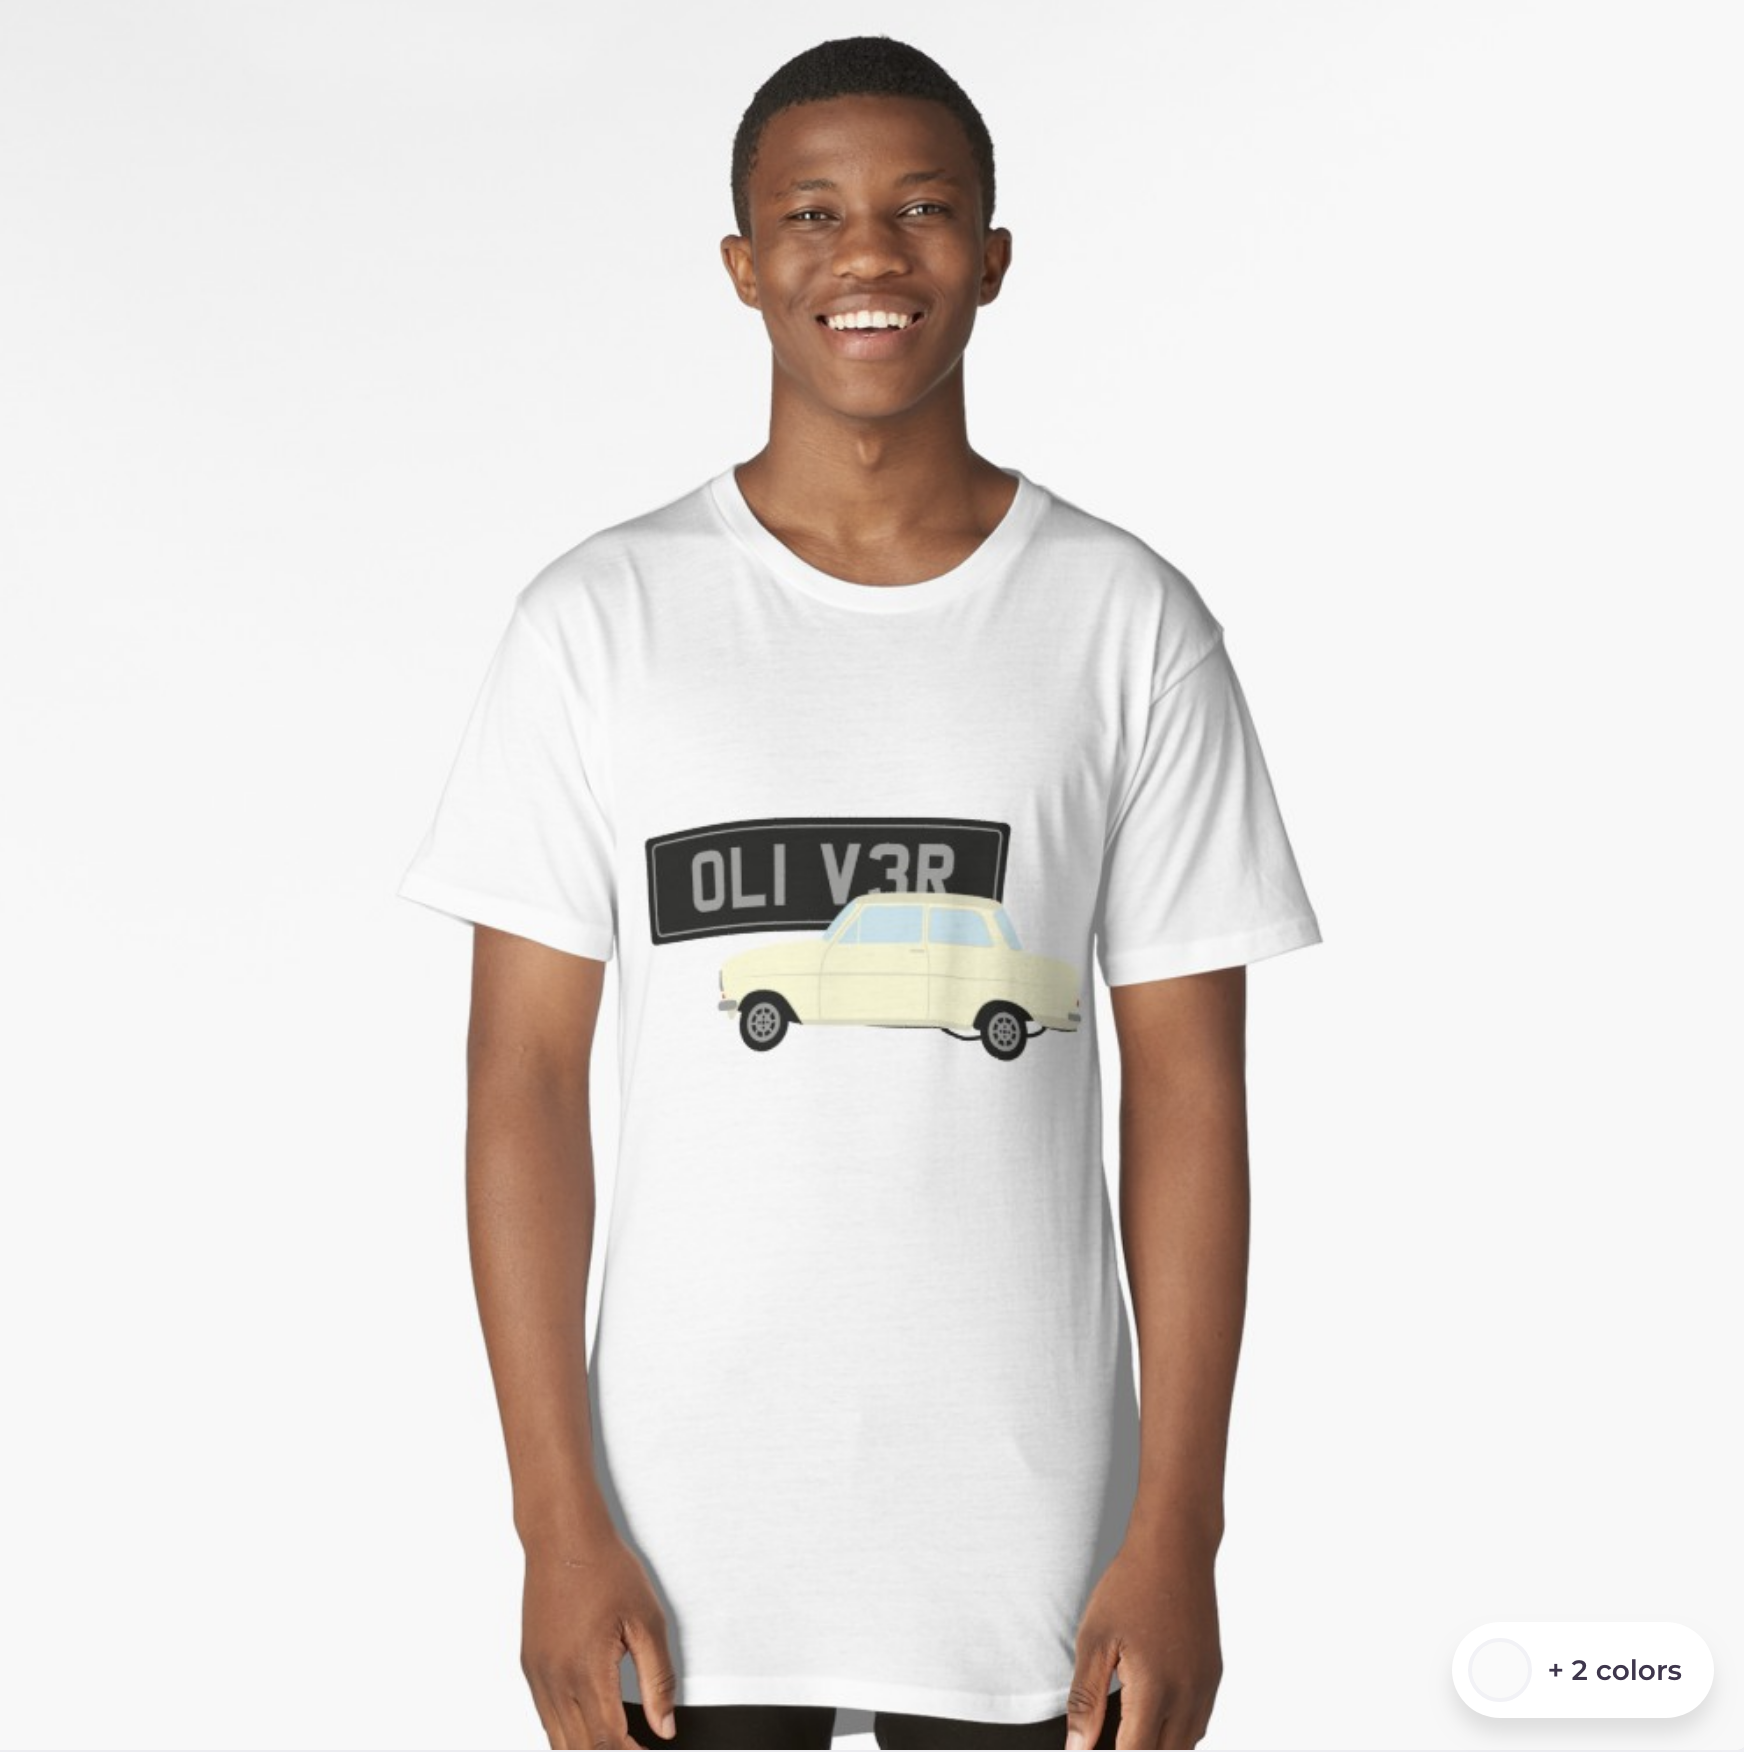 OLIV3R - Available on 53 products including t-shirts, stickers, mugs, cases and pillows